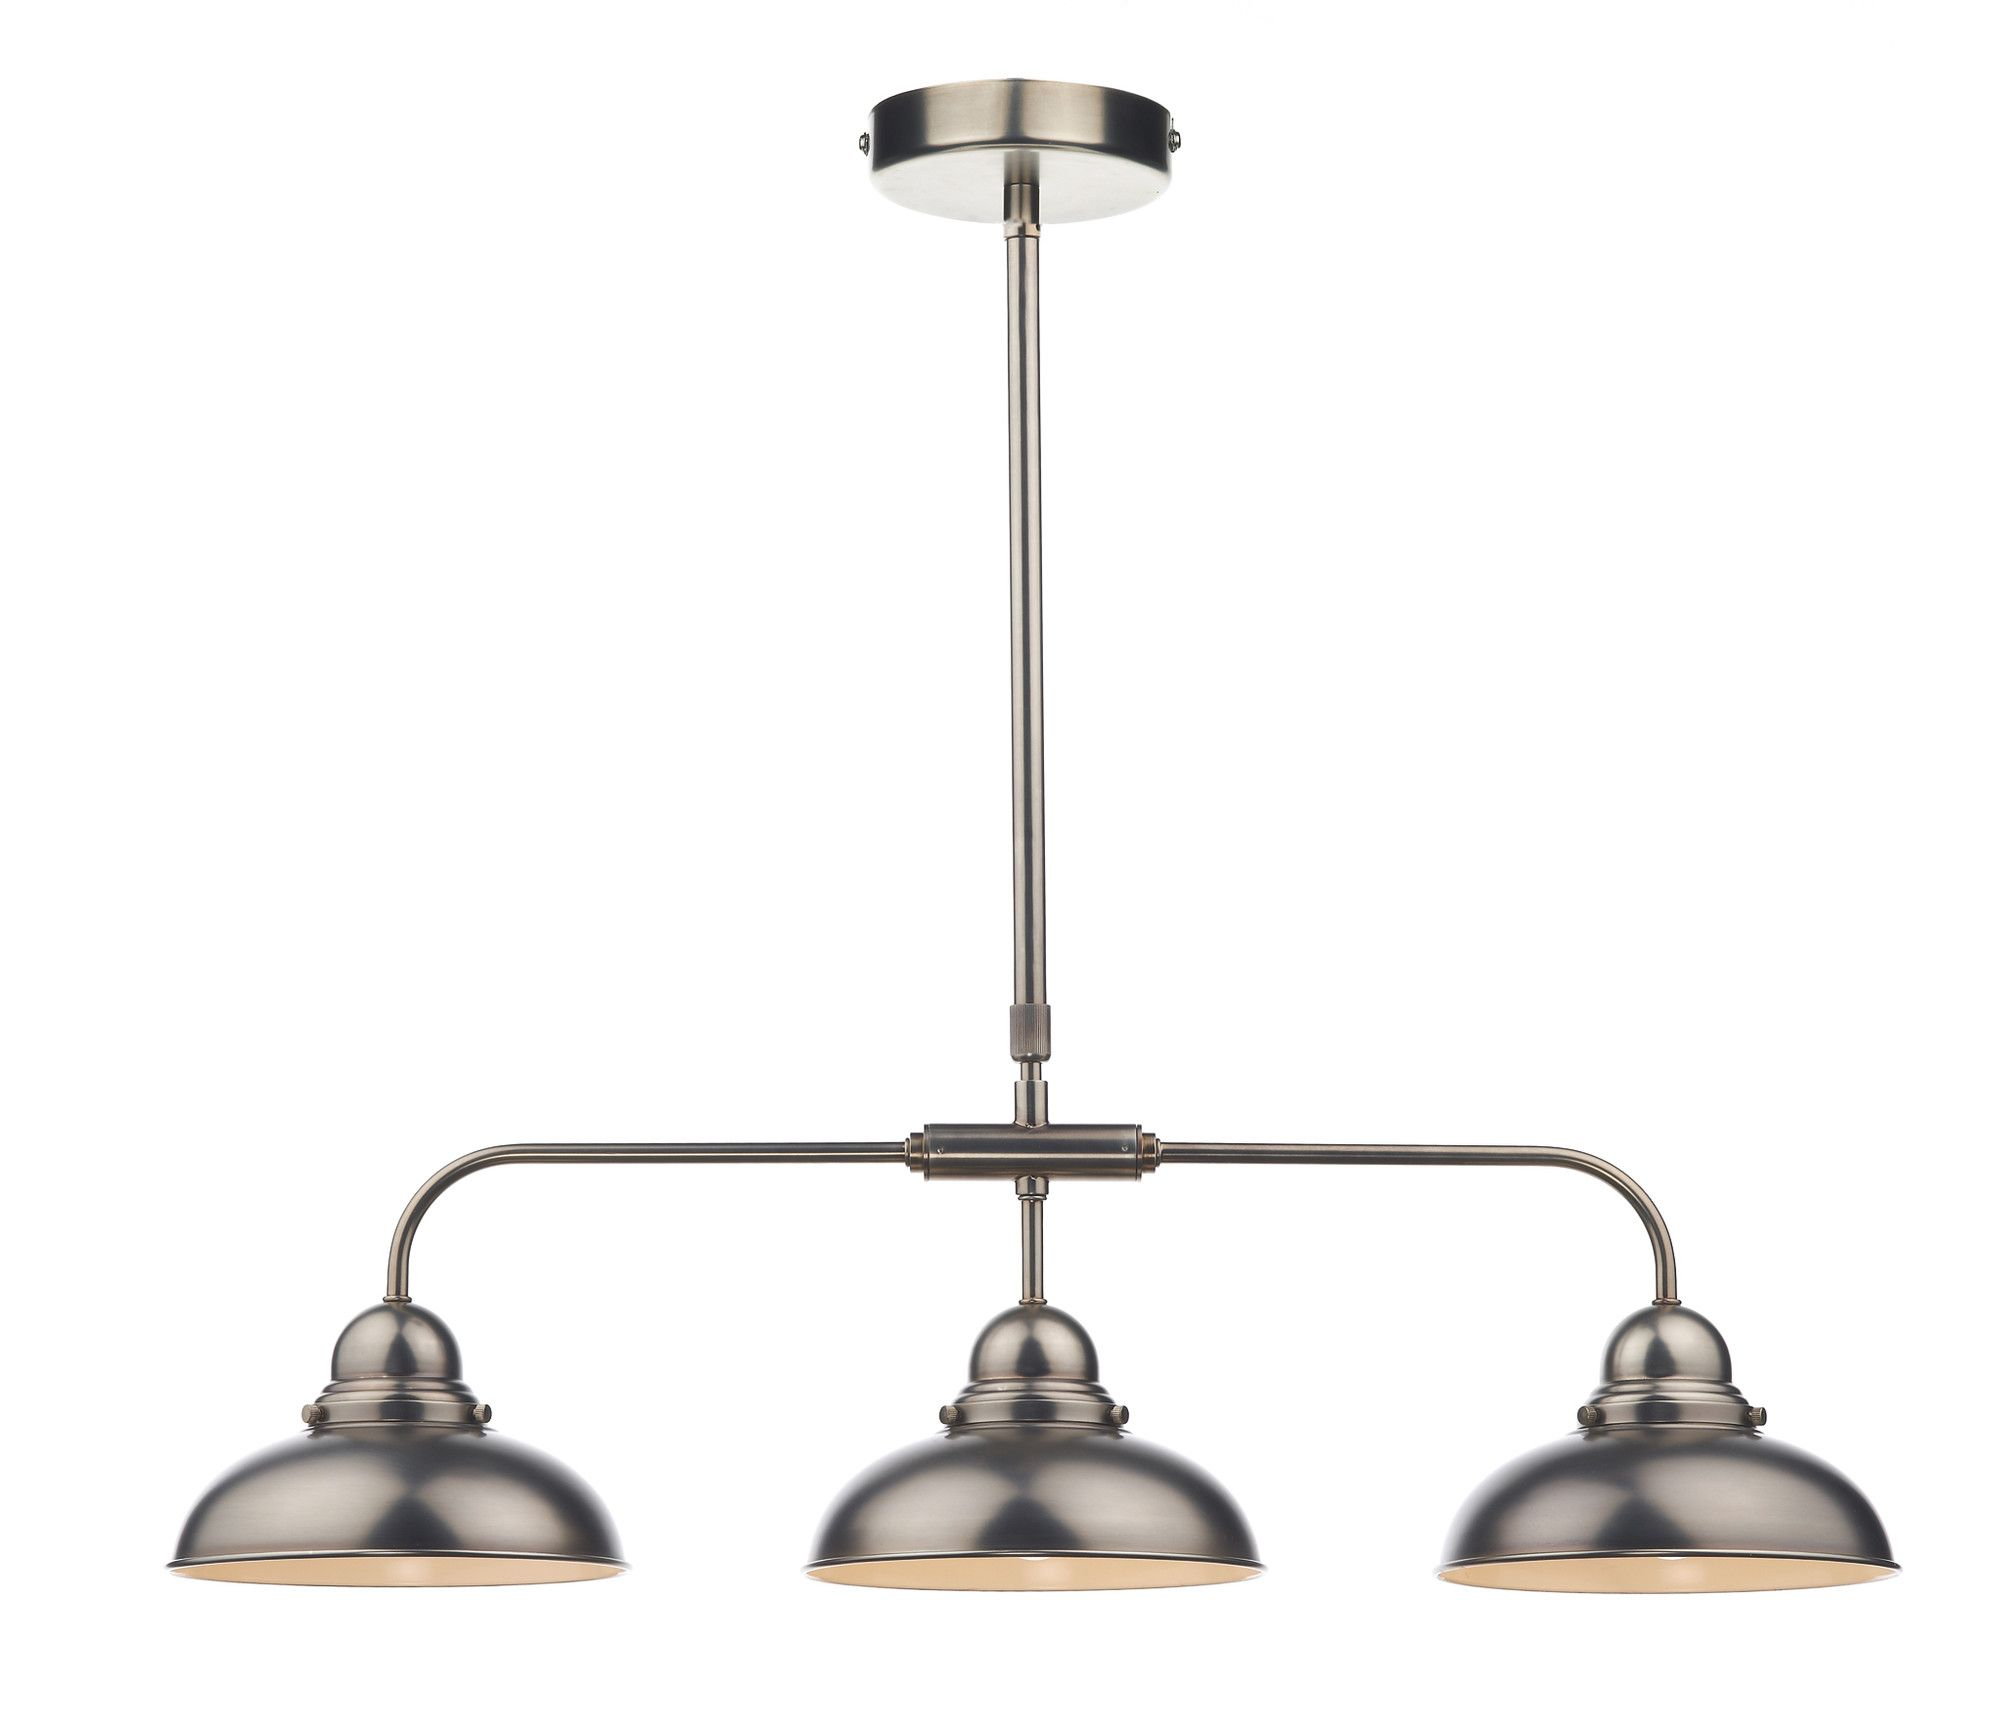 3 Light Kitchen Island Pendant Saloon Pendant Island Pendants Pendants And Lighting